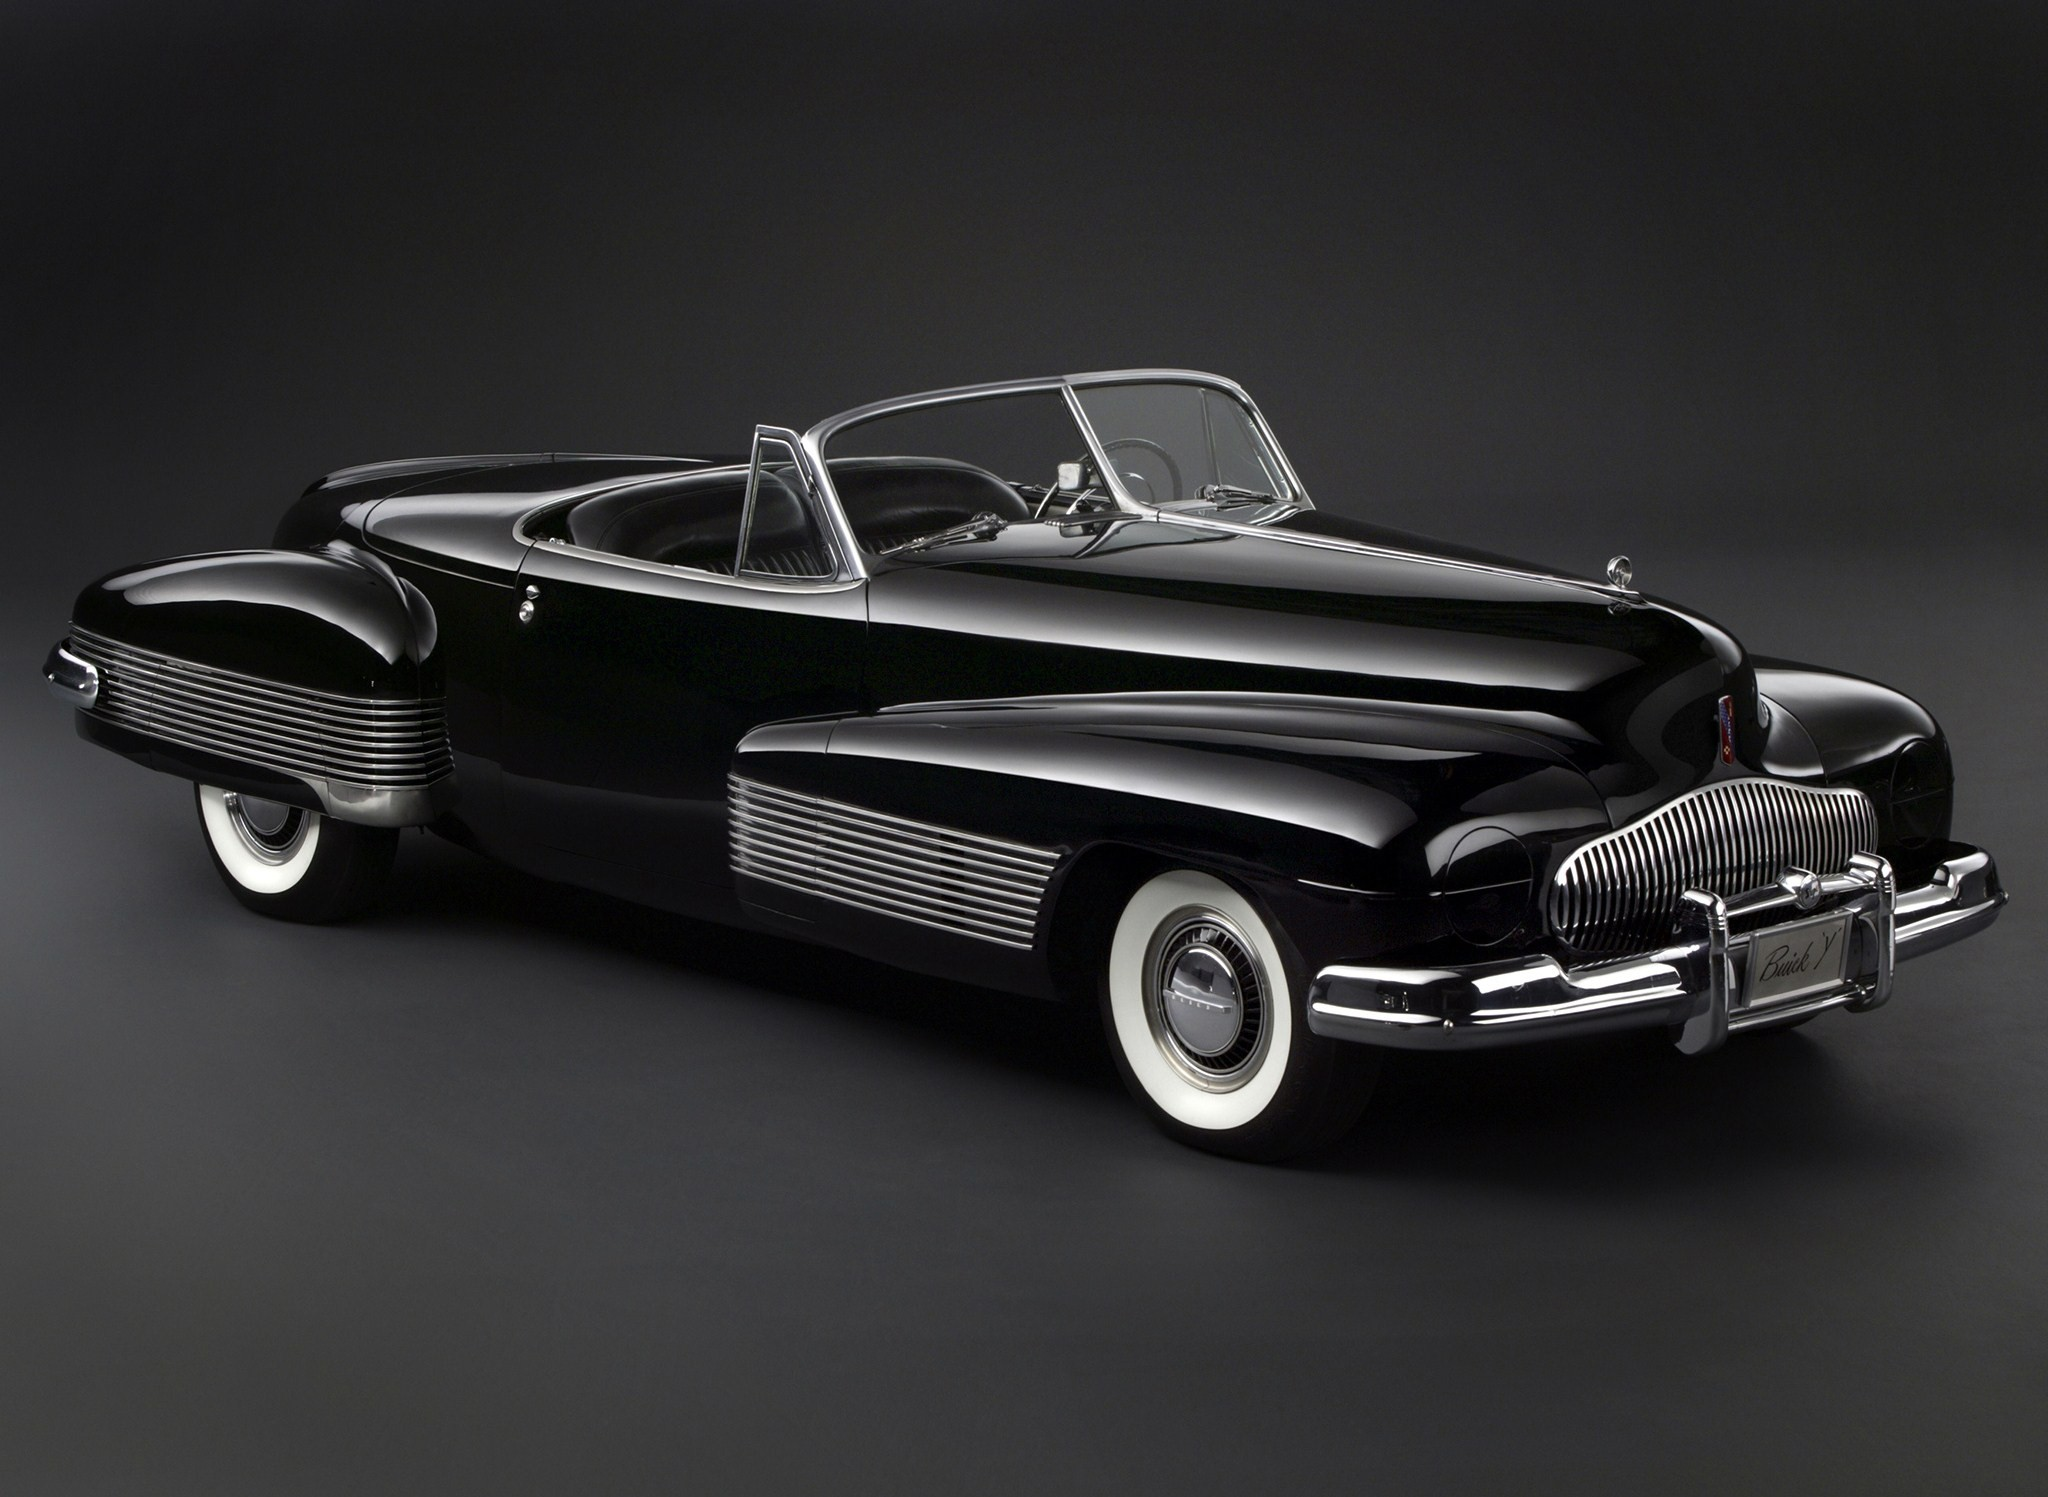 Buick Classic Car Wallpapers   SA Wallpapers 2048x1497